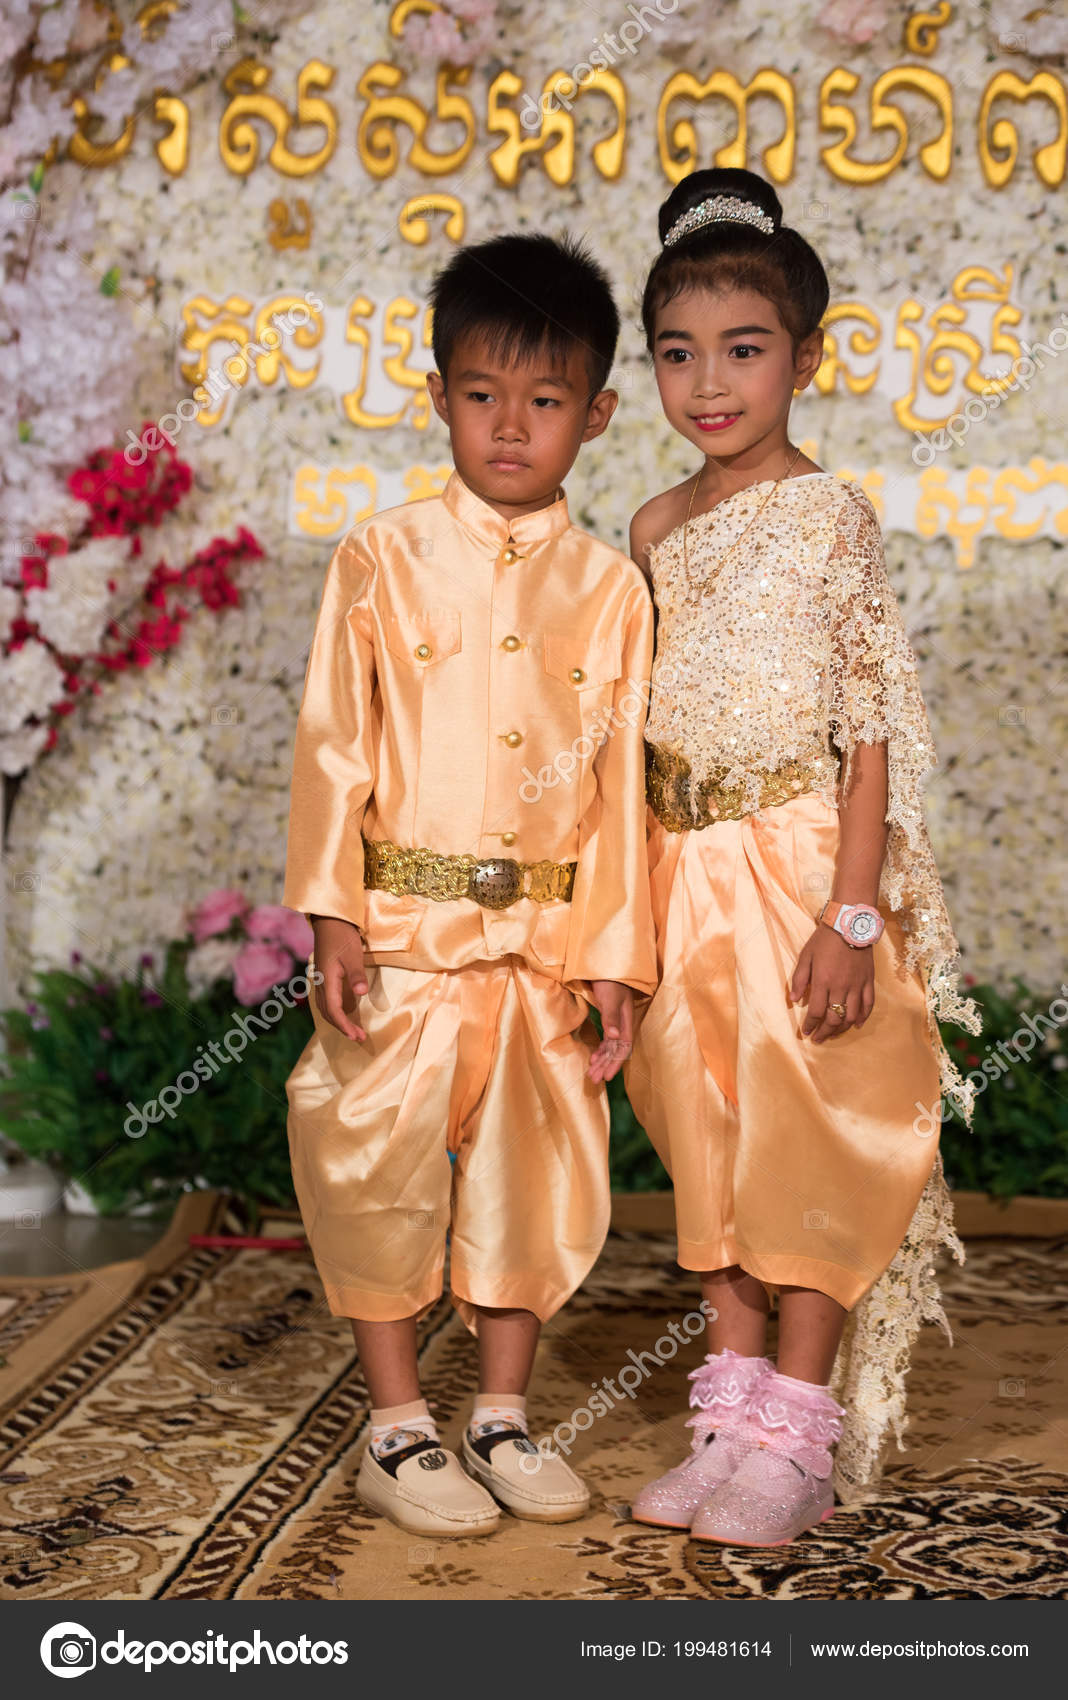 photo: cambodian wedding outfit | small khmer kids posing